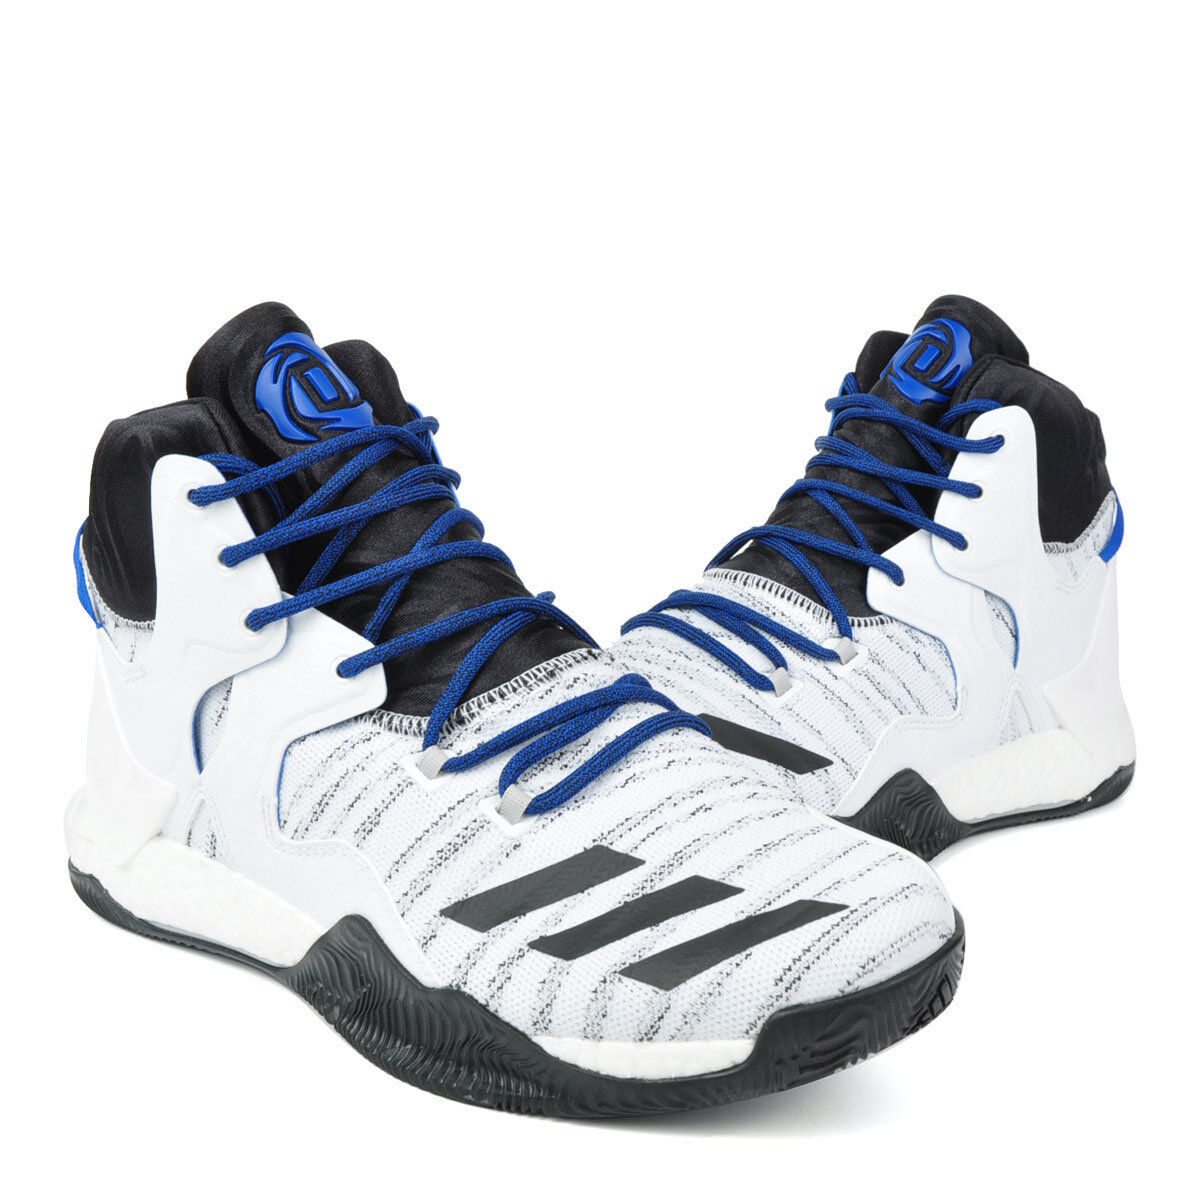 Adidas D pink 7 Boost VII dpink mens white basketball shoes NEW Adidas B72720